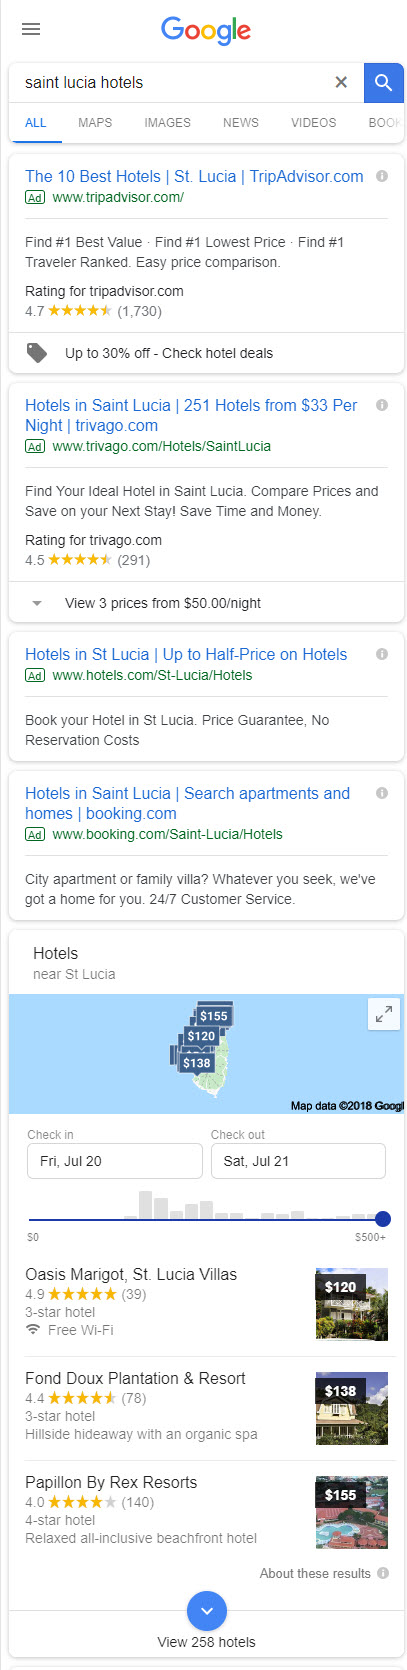 Local Pack - Saint Lucia Hotels